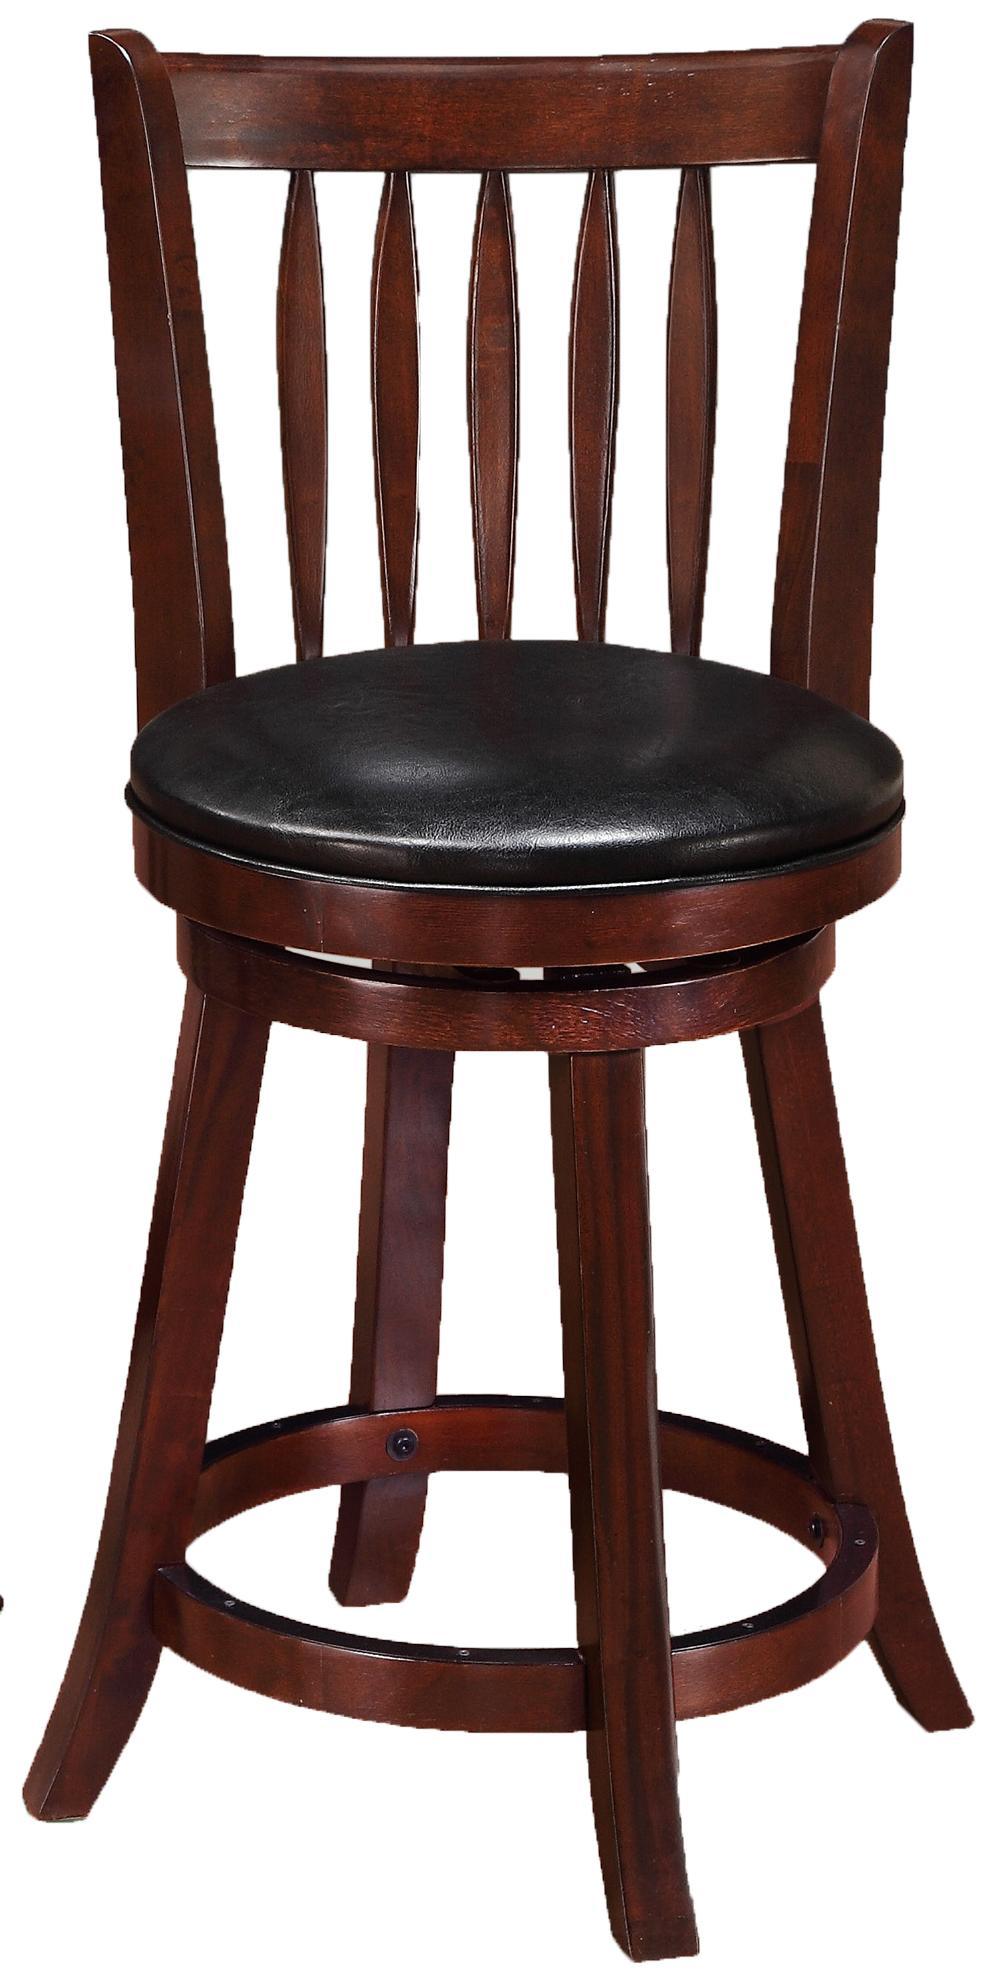 Crown Mark Bar Stools Low Swivel Chair - Item Number: 2797C-24